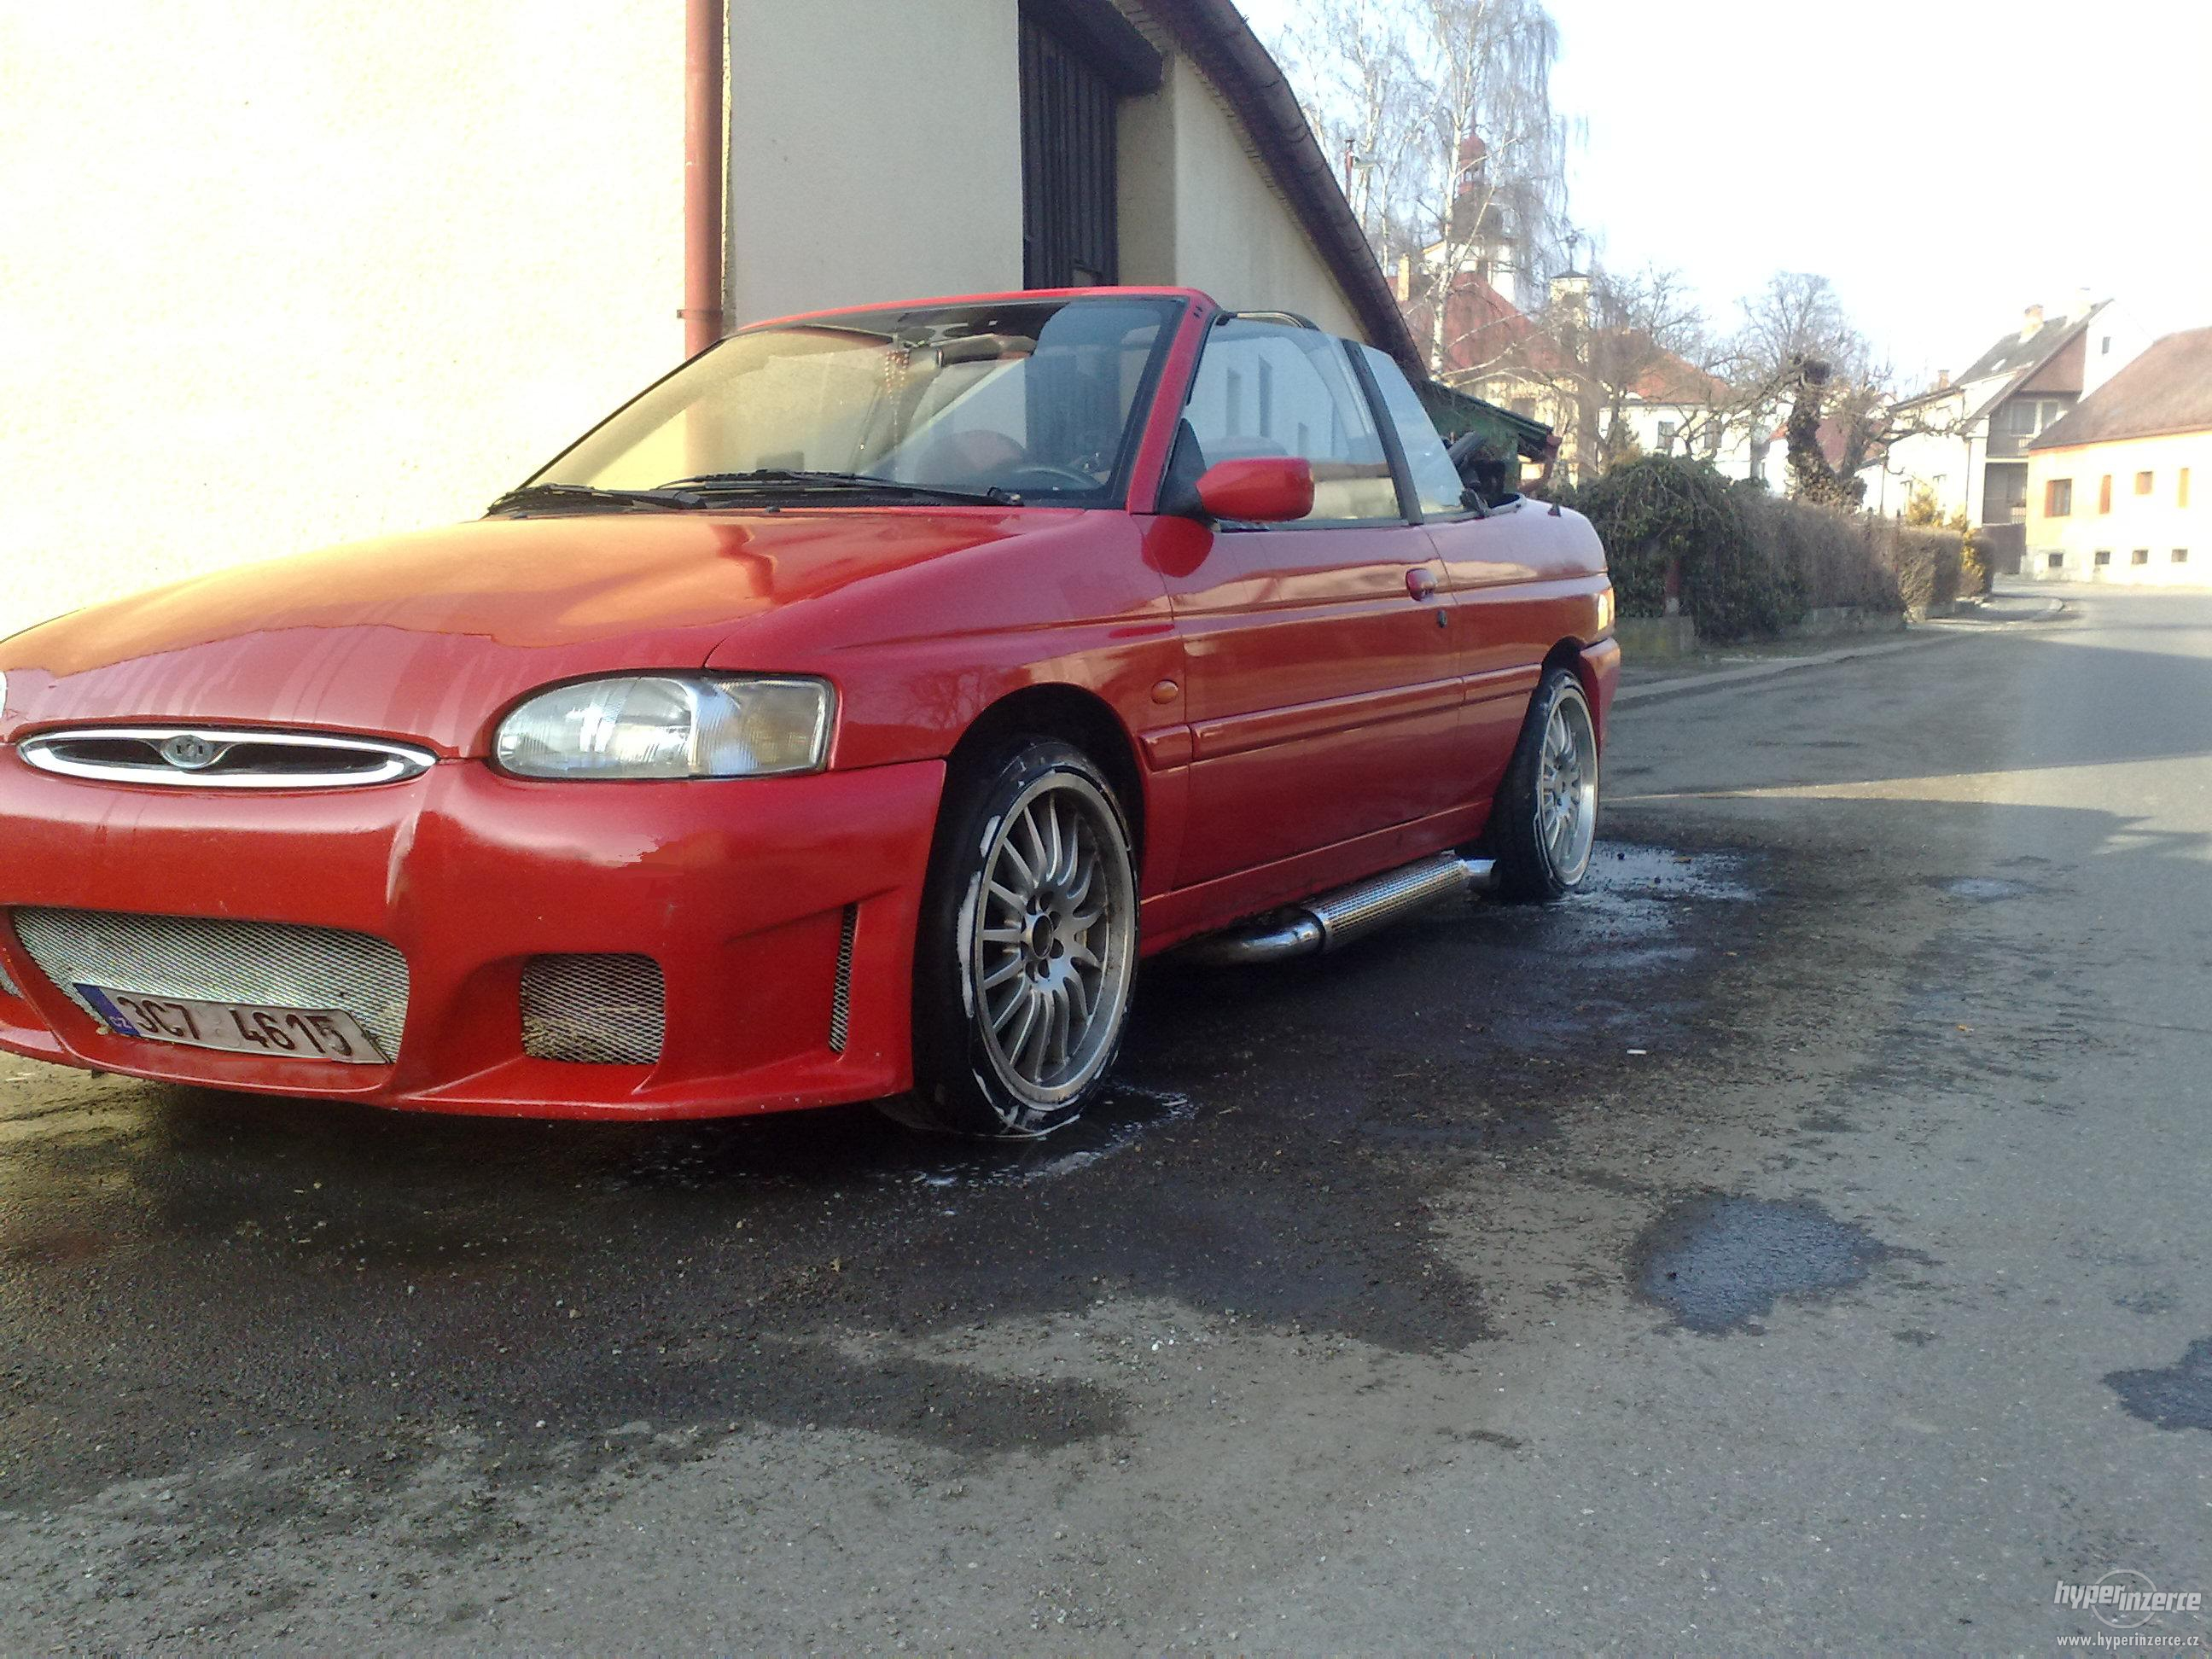 Ford Orion 1.4